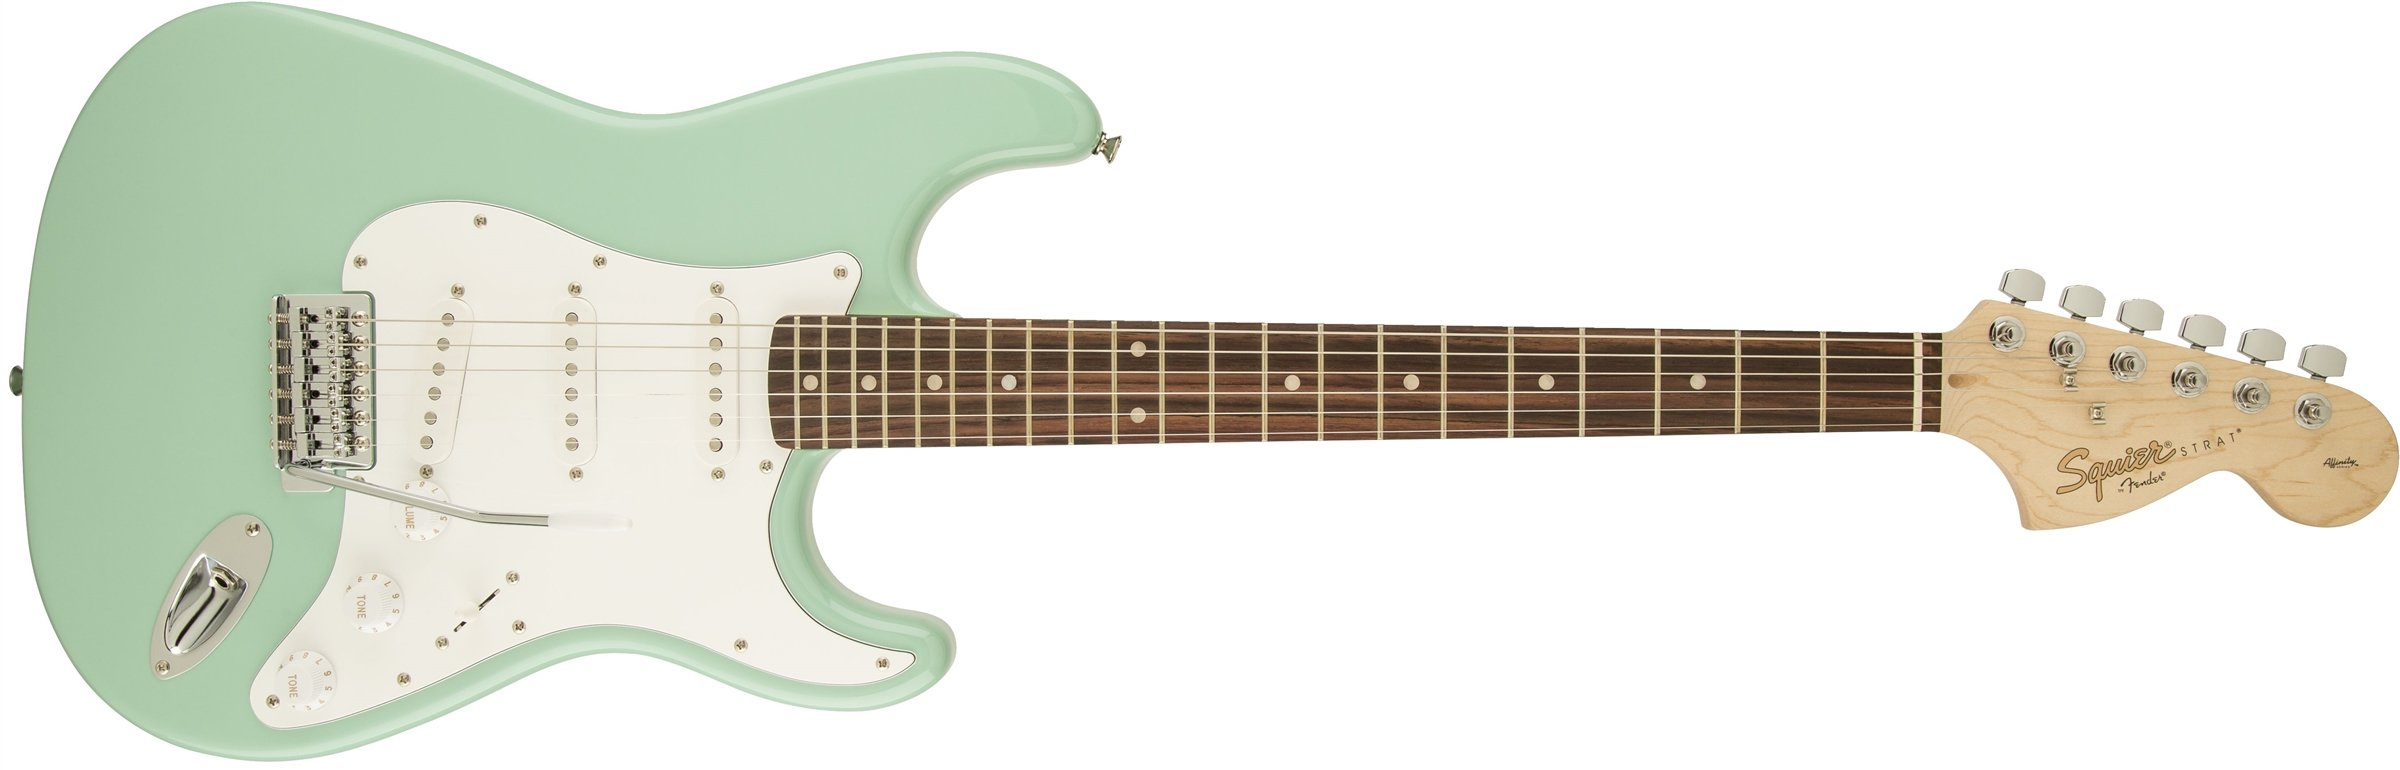 Squier by Fender Affinity Stratocaster Beginner Electric Guitar - Rosewood Fingerboard, Surf Green by Fender